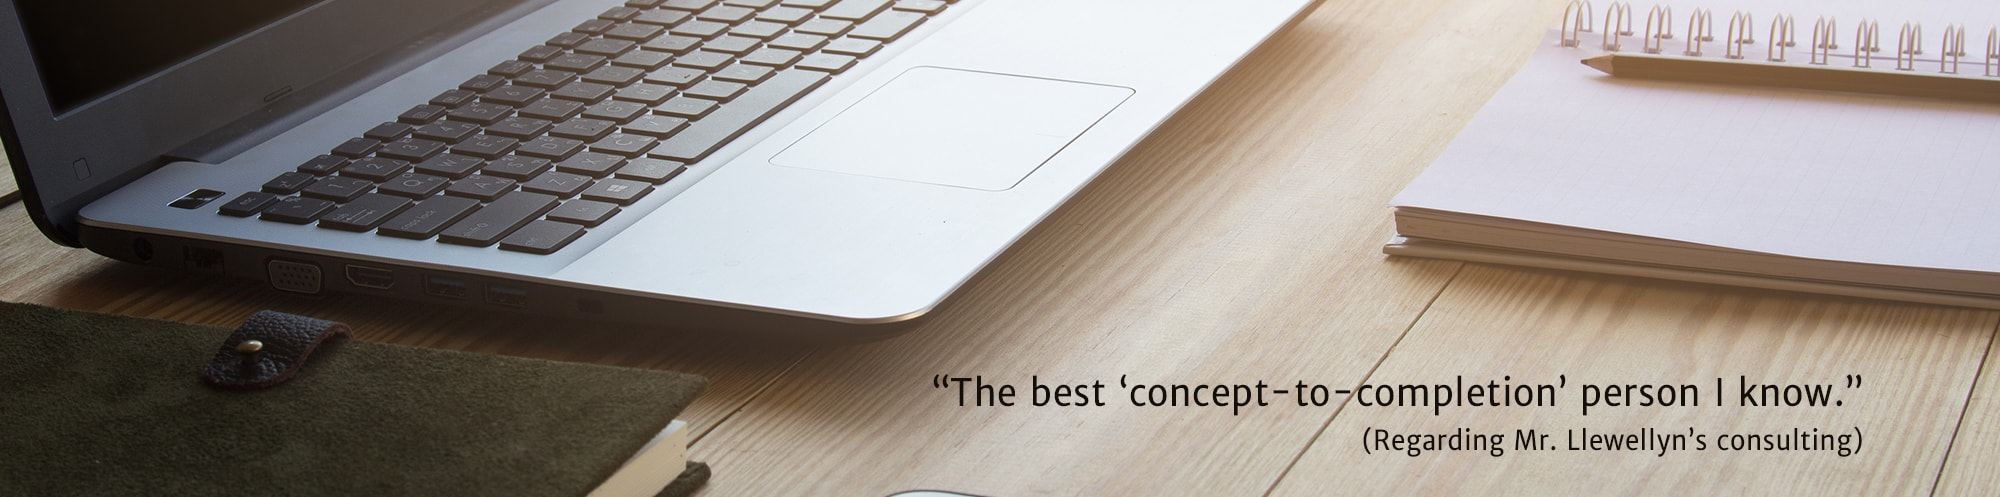 The best concept-to-completion person I know. - Regarding Mr. Llewellyn's consulting